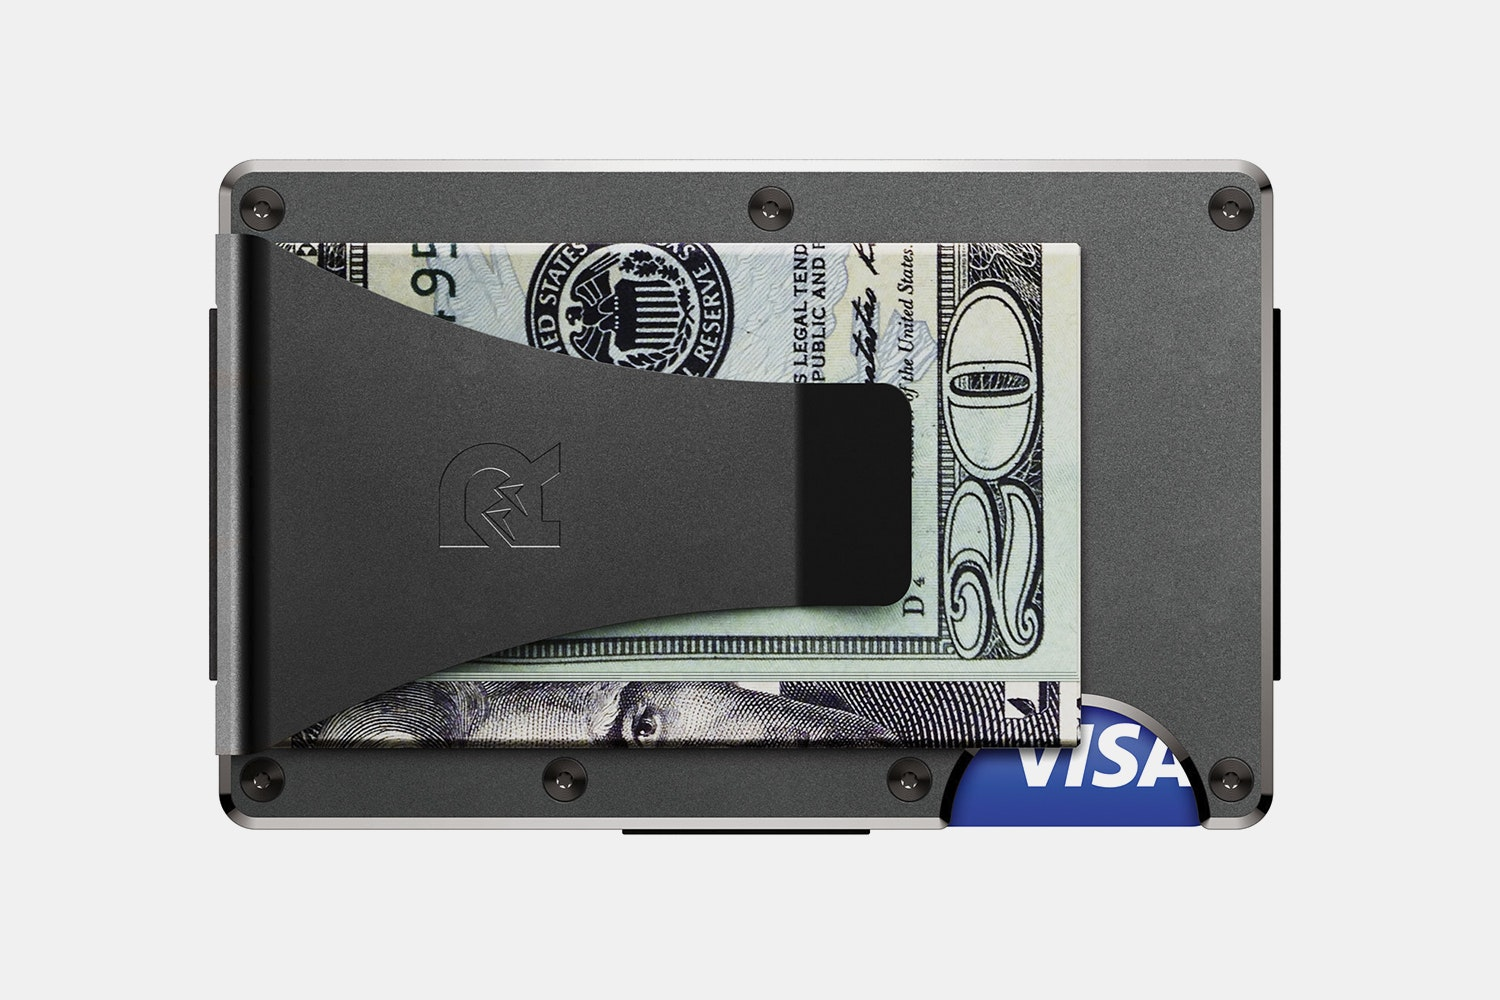 Titanium - Gunmetal - Money Clip  (+ $40)